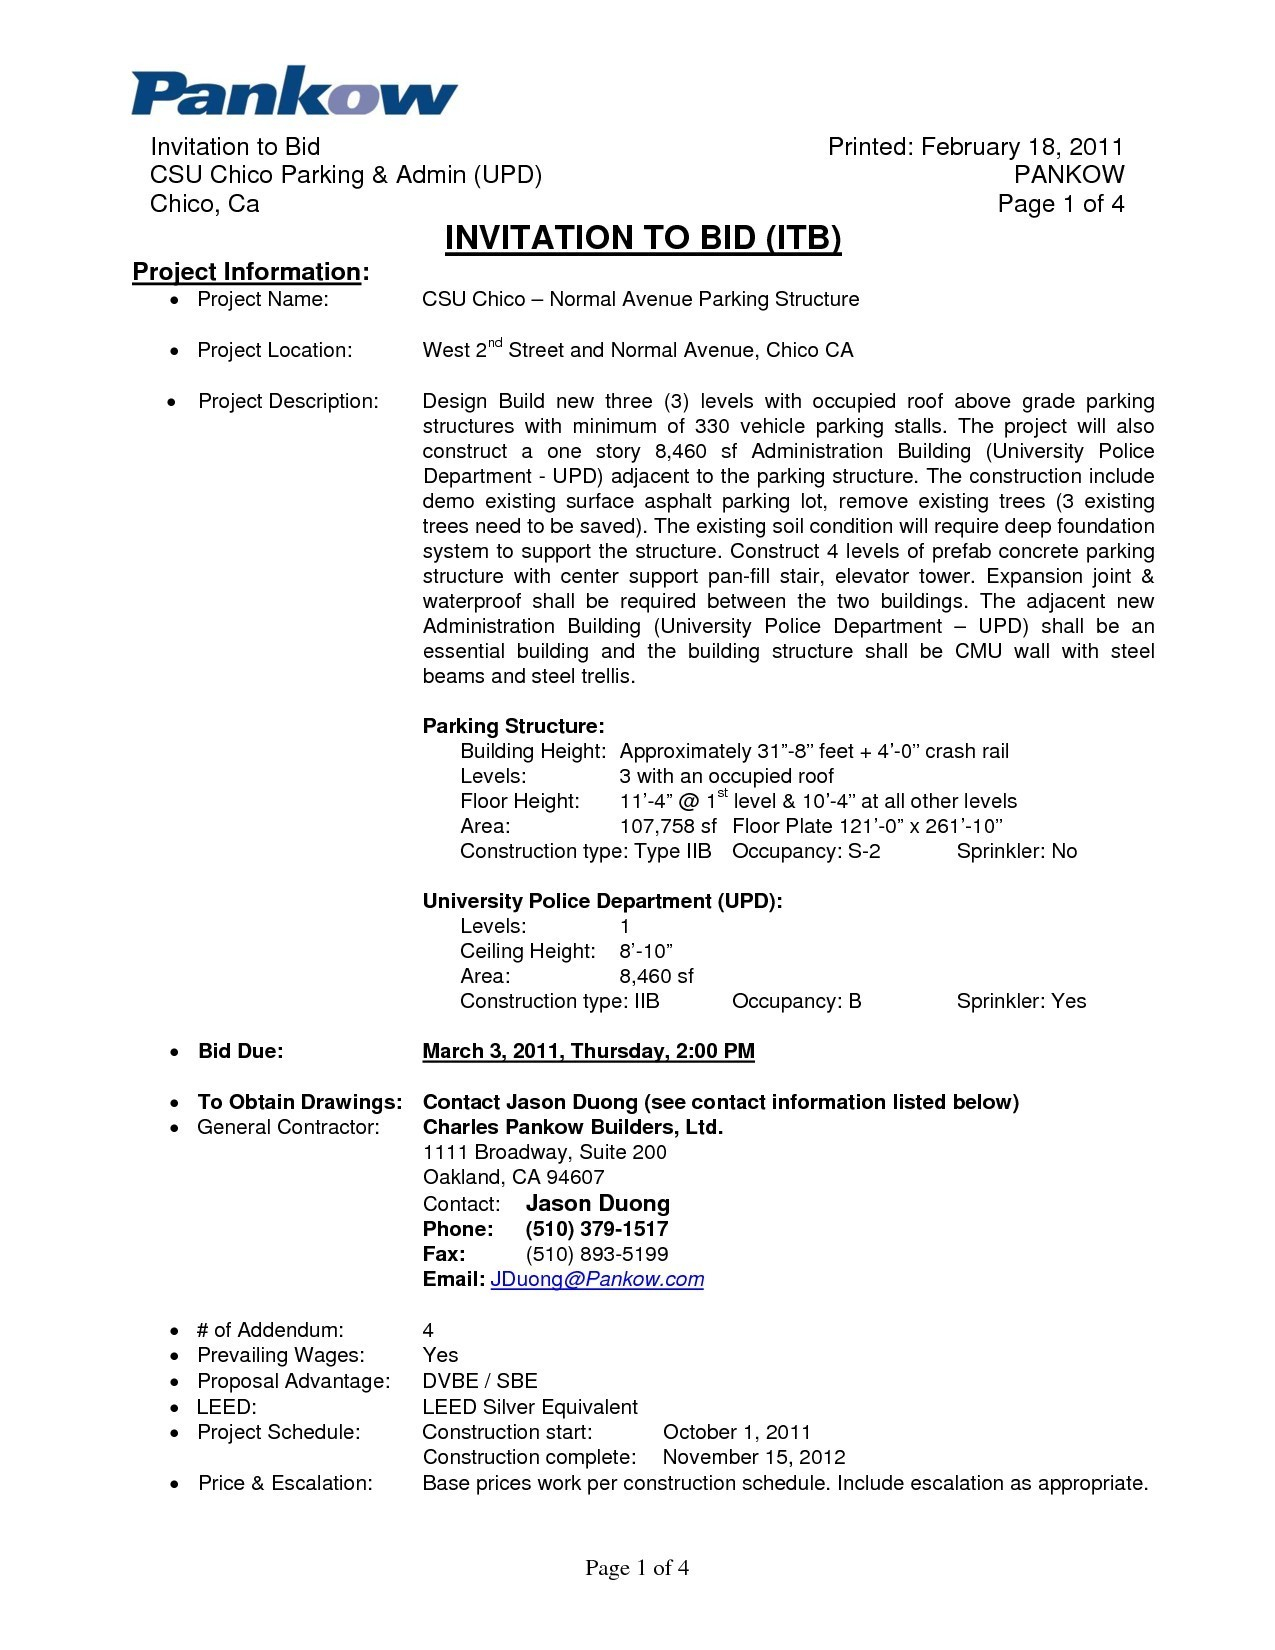 Invitation to Bid Letter Template - Letter Templates Archives Page 28 Of 60 Contactnumbers Co